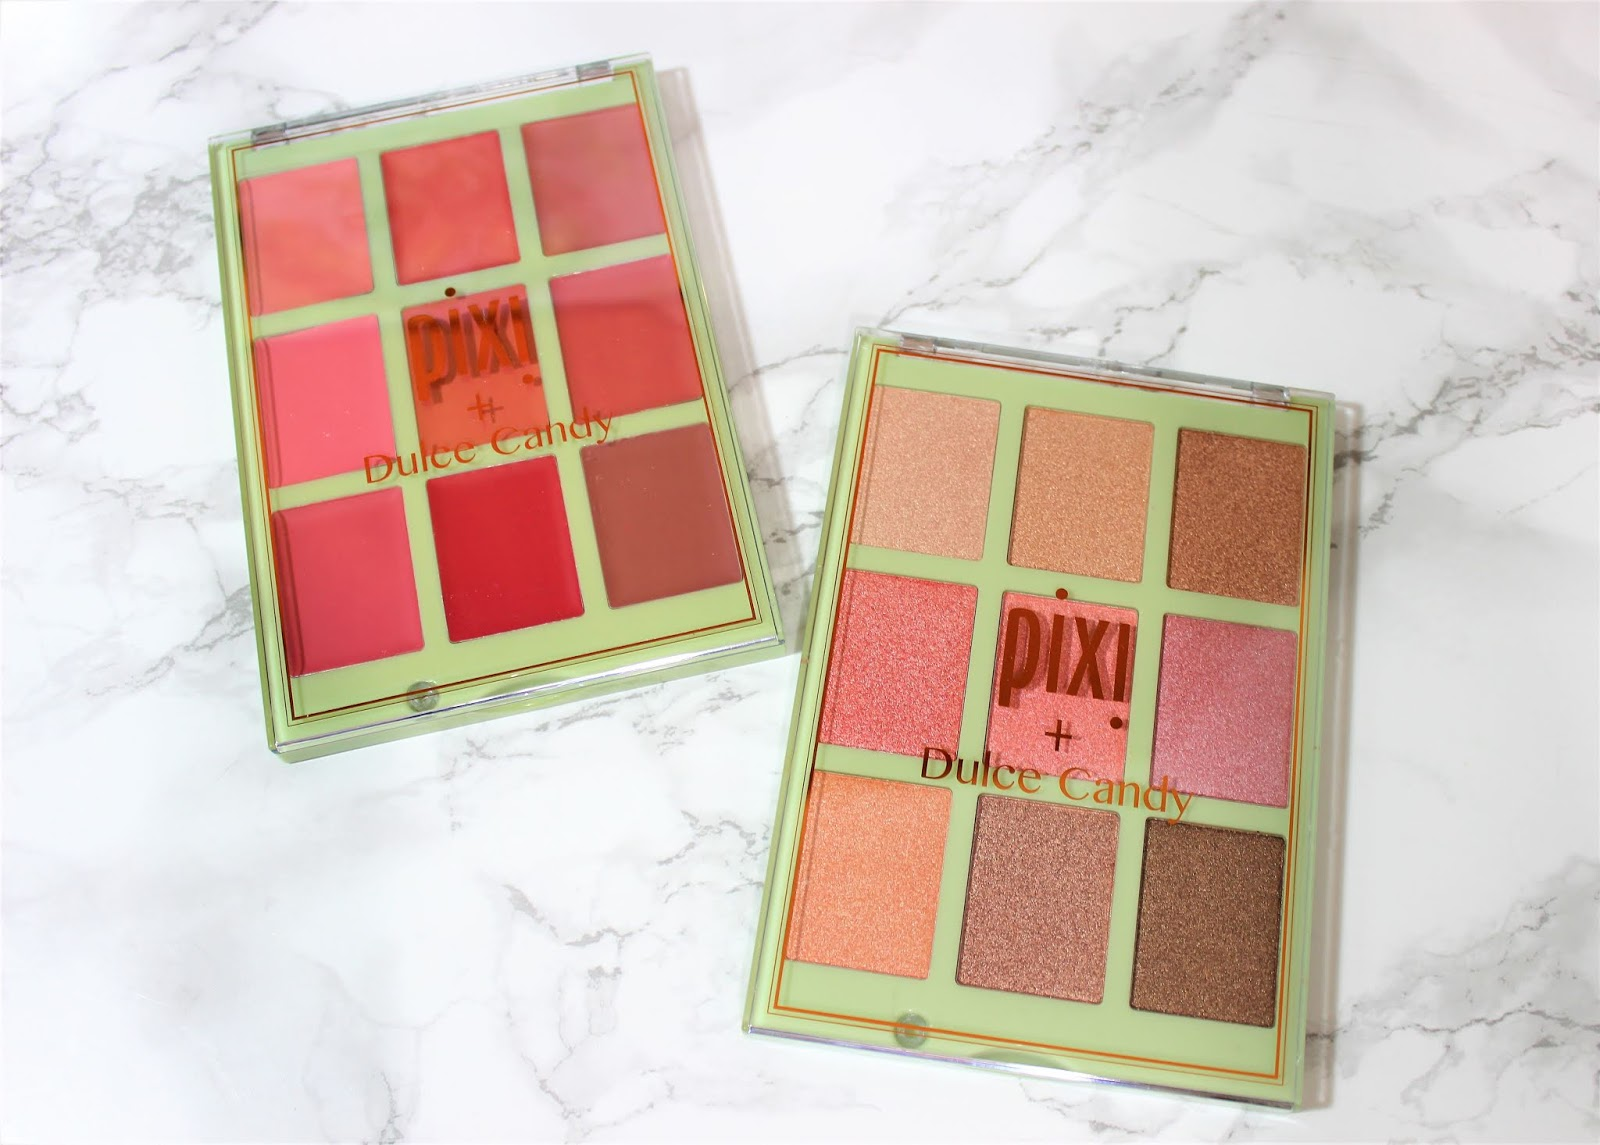 Pixi X Dulce Candy review